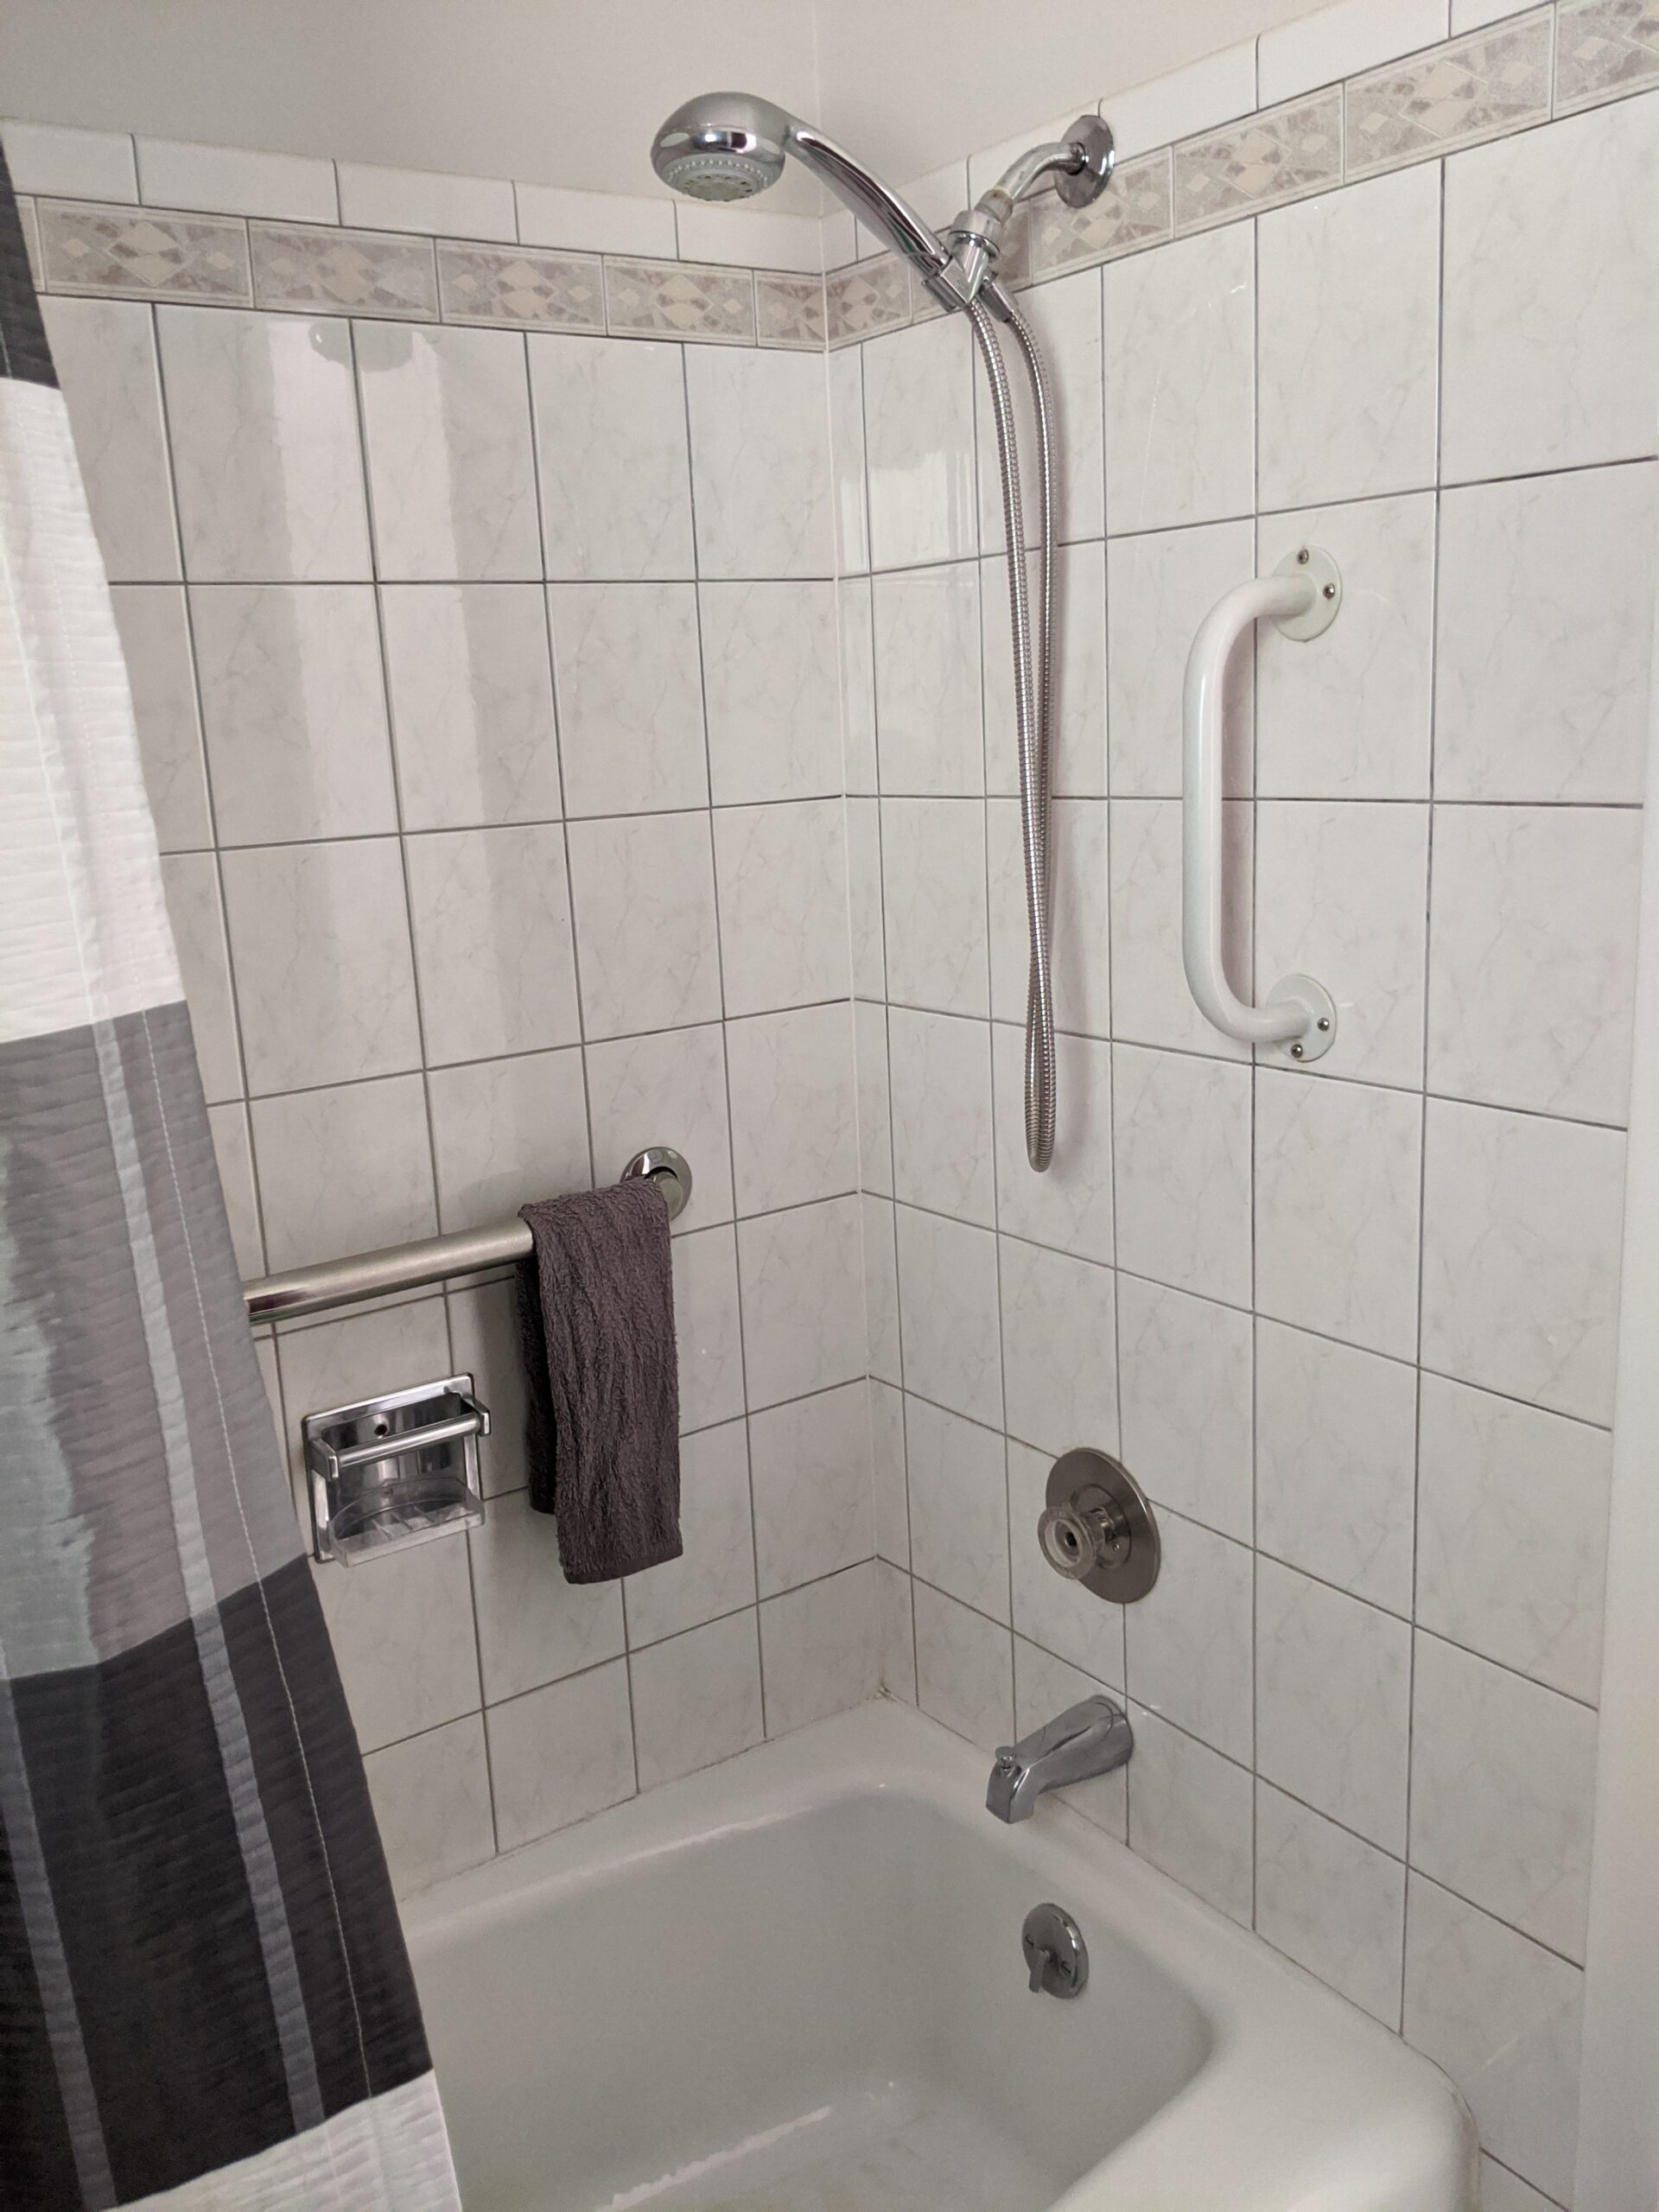 In order to add a second bathroom on the main level, we're going to change the floor plan of the existing bathroom, including rotating this shower 90-degrees. Luckily, the tub can be reused without refinishing the surface.